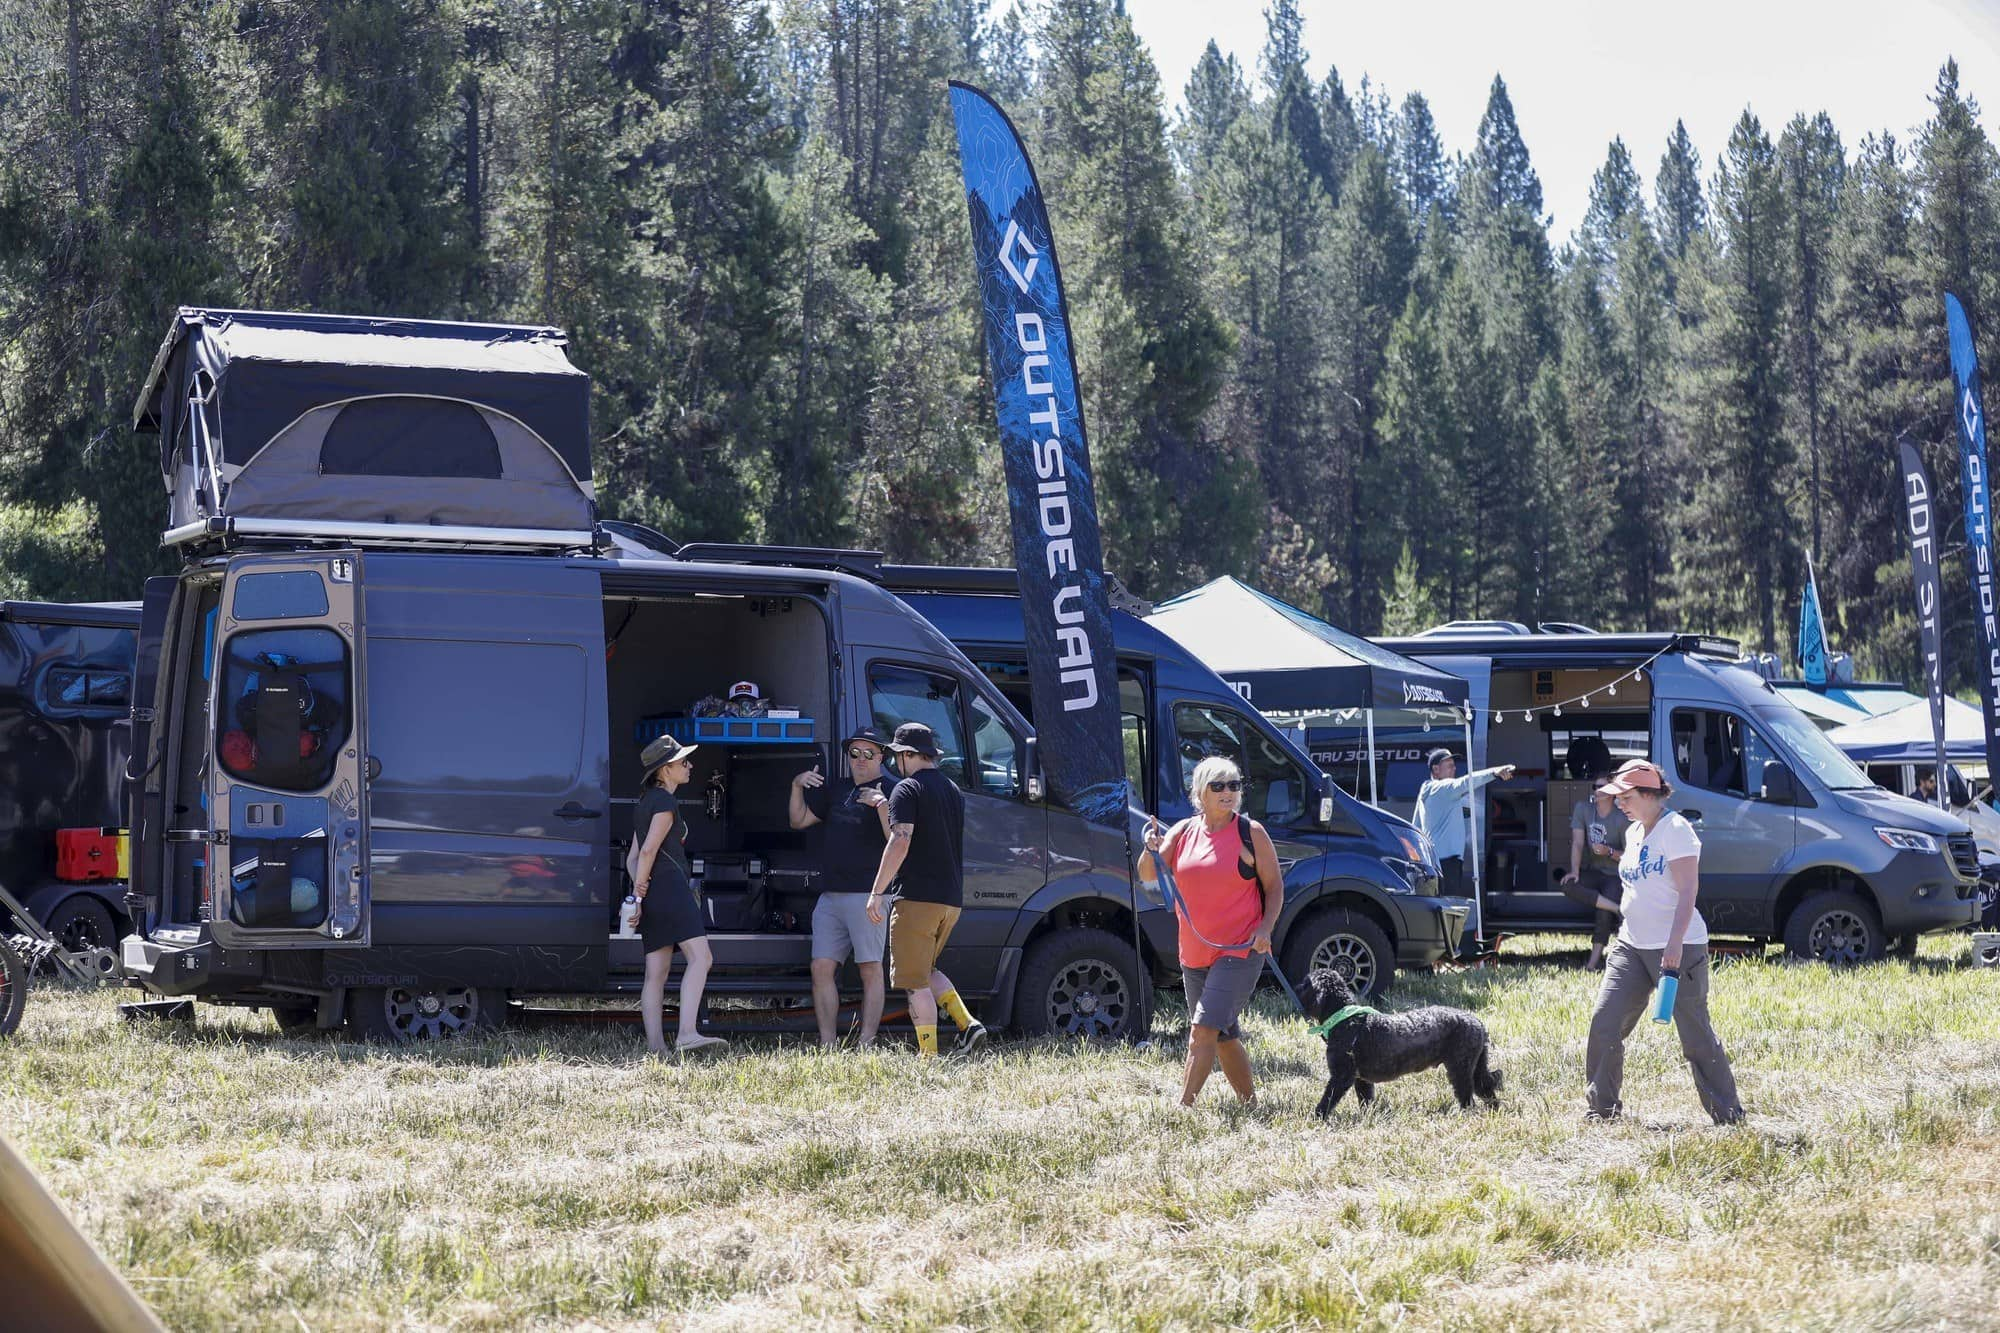 Vendors at Open Roads Fest included Outside Van, Aluminess, Zamp Solar, DIY Adventure Van Co and more!